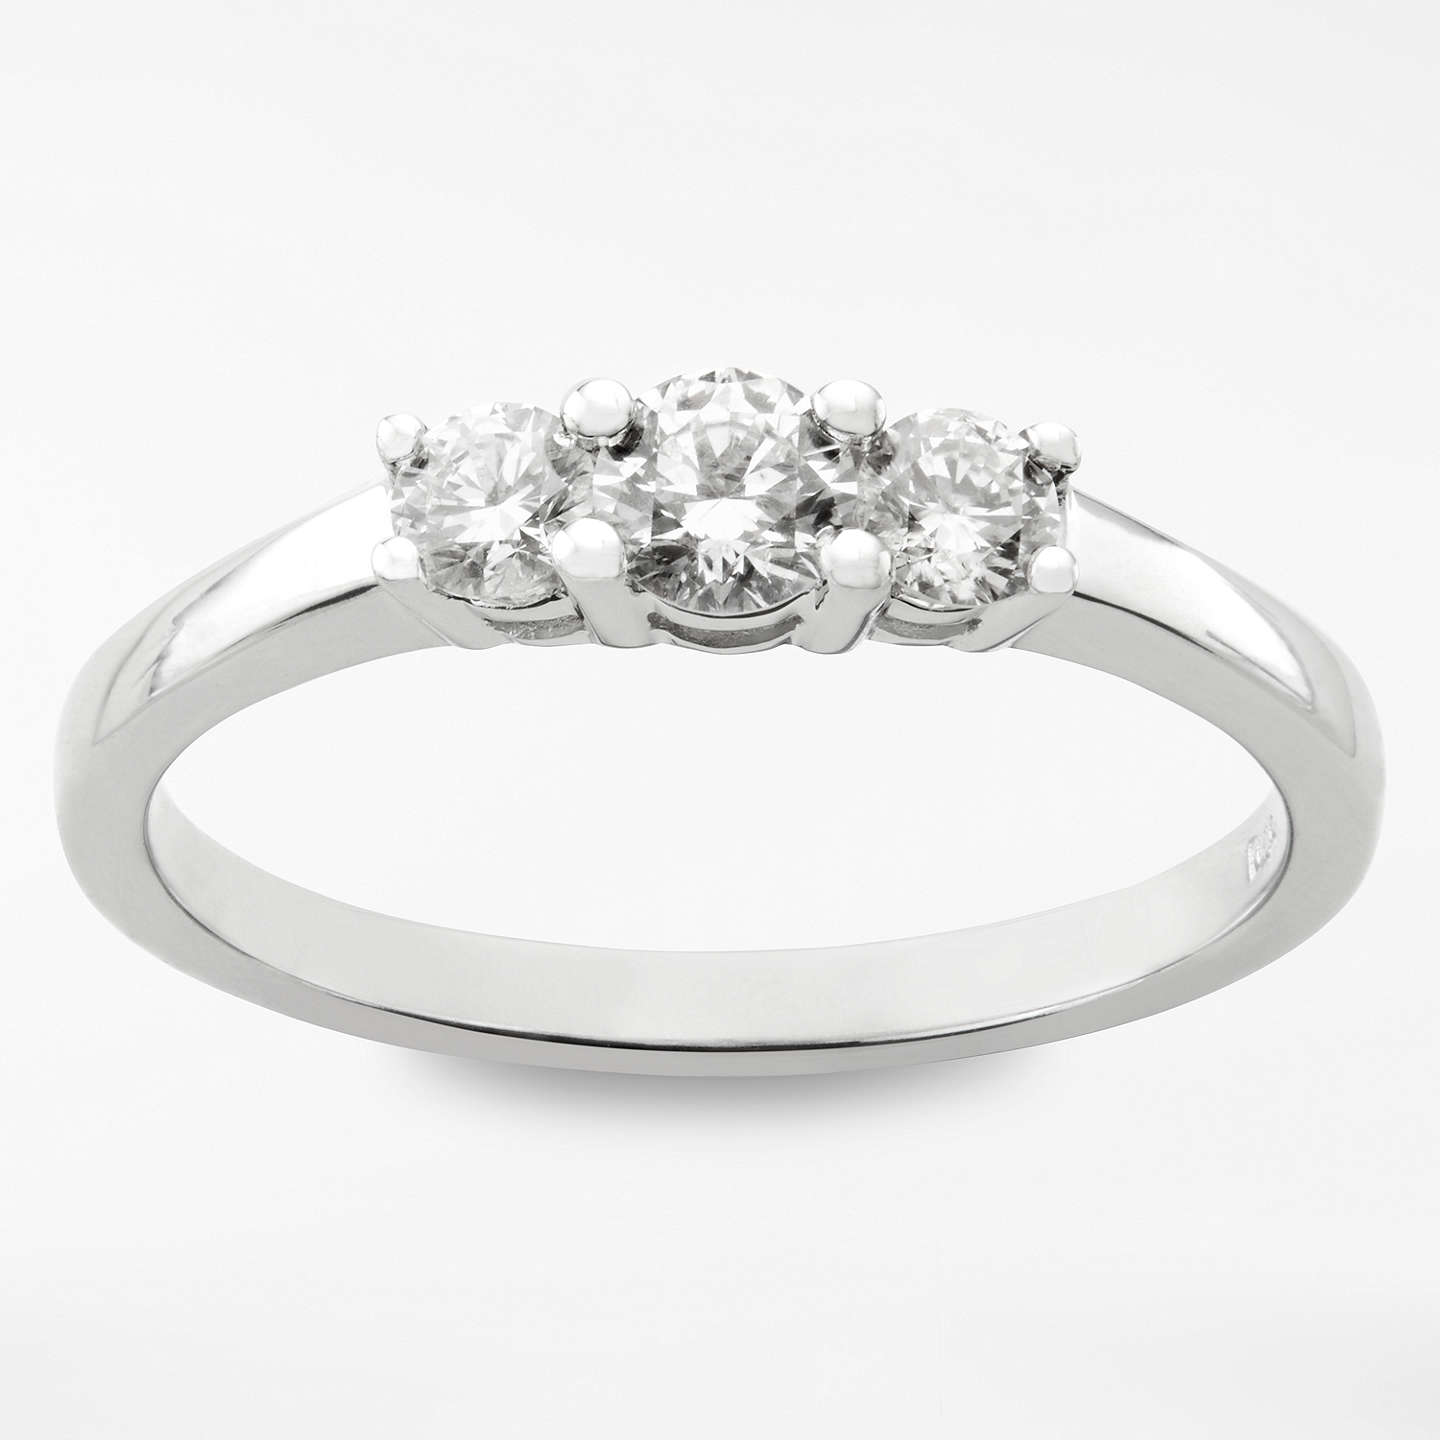 maarten and brilliant product best in engagement martin diamond round ring st online gems store jewery rings dk at stores